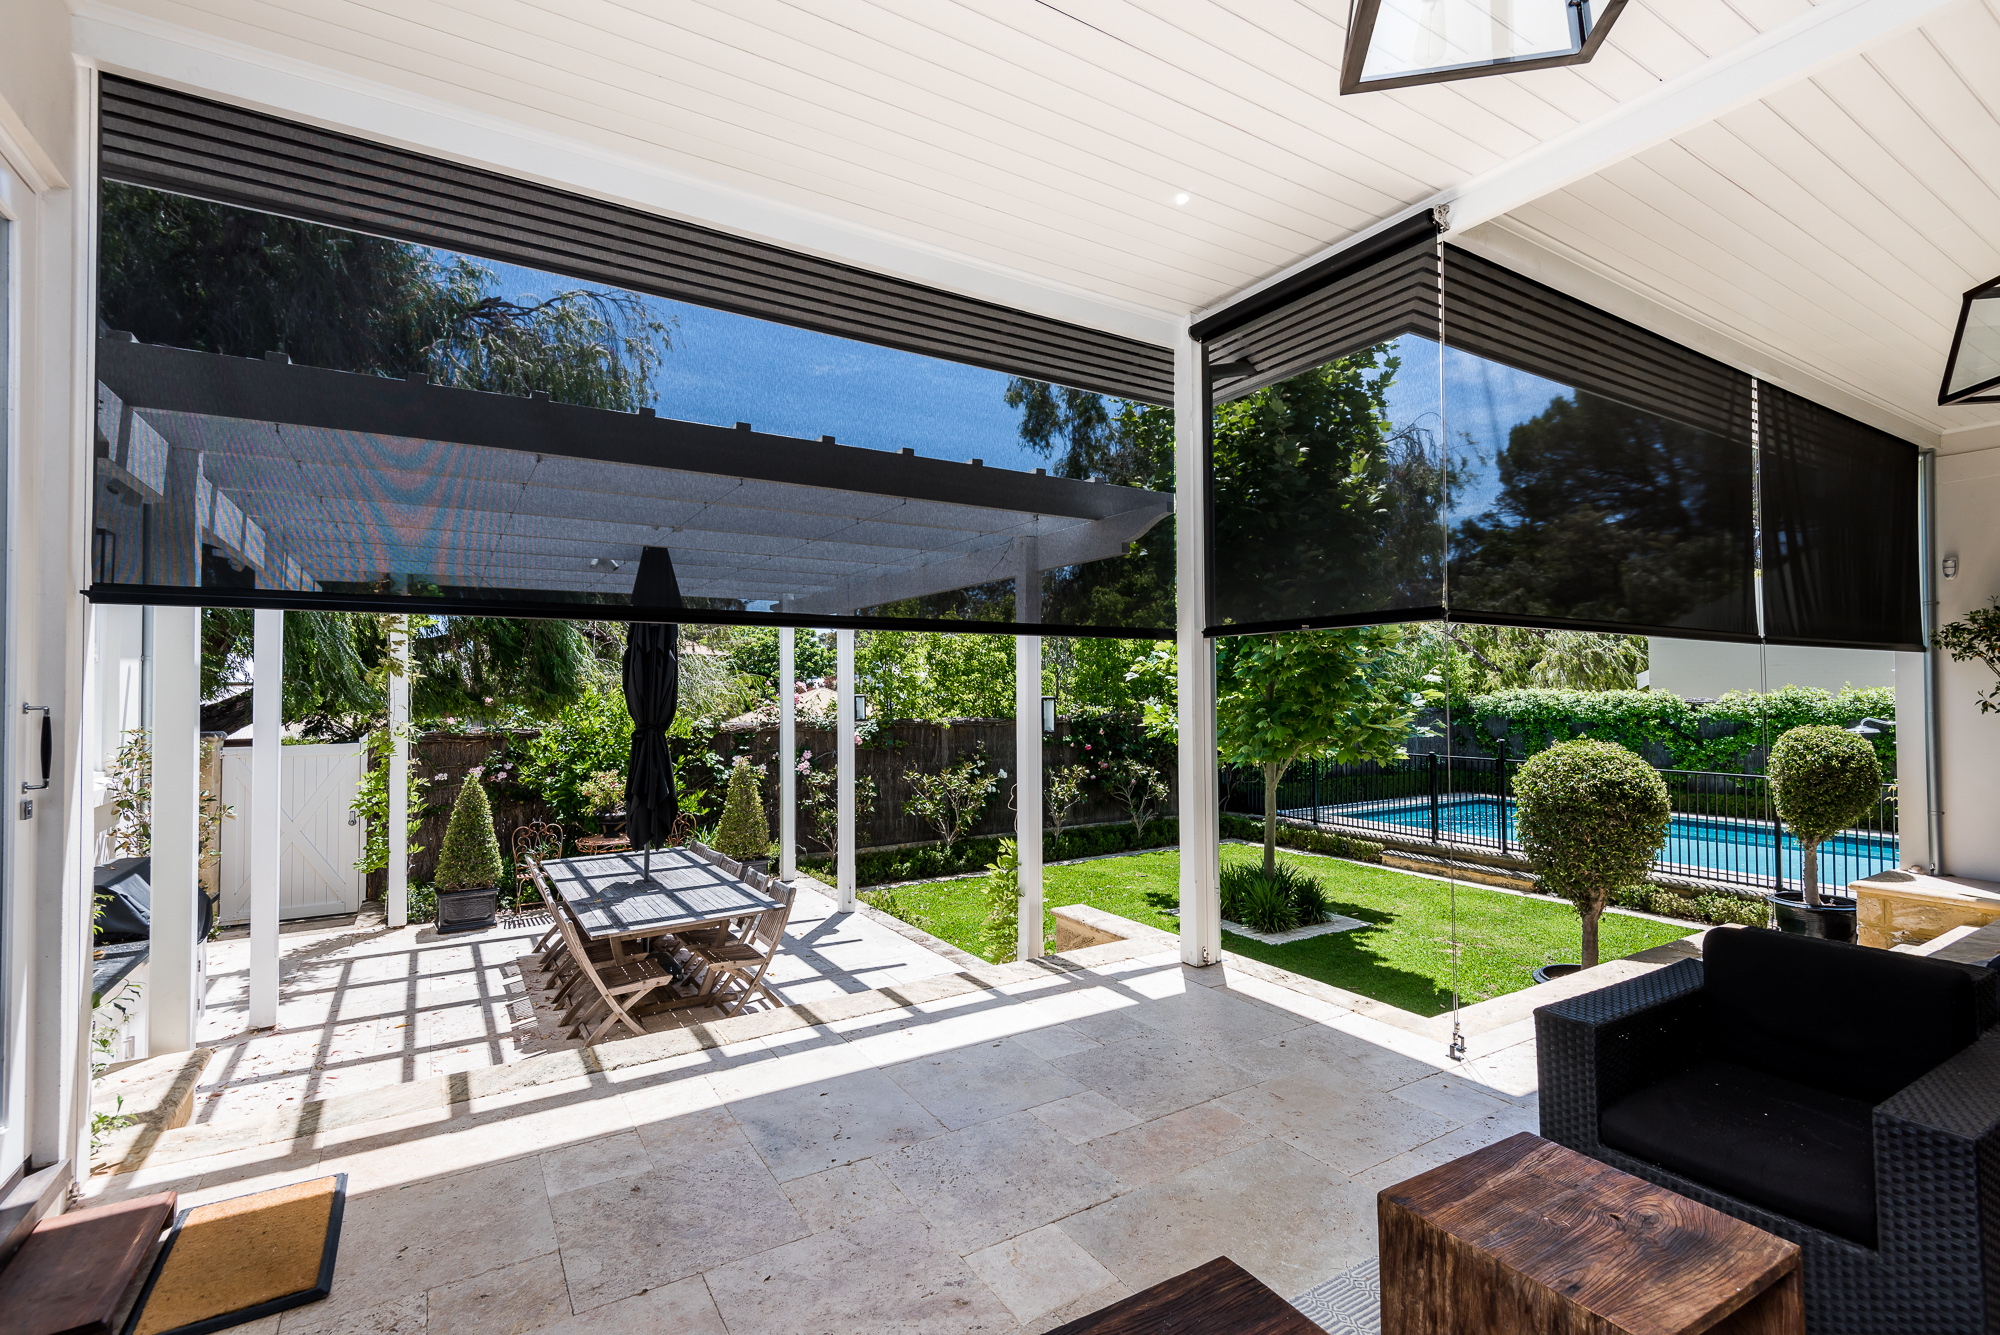 page patented home guided banner ziptrak track patio features blinds innovative outdoor for